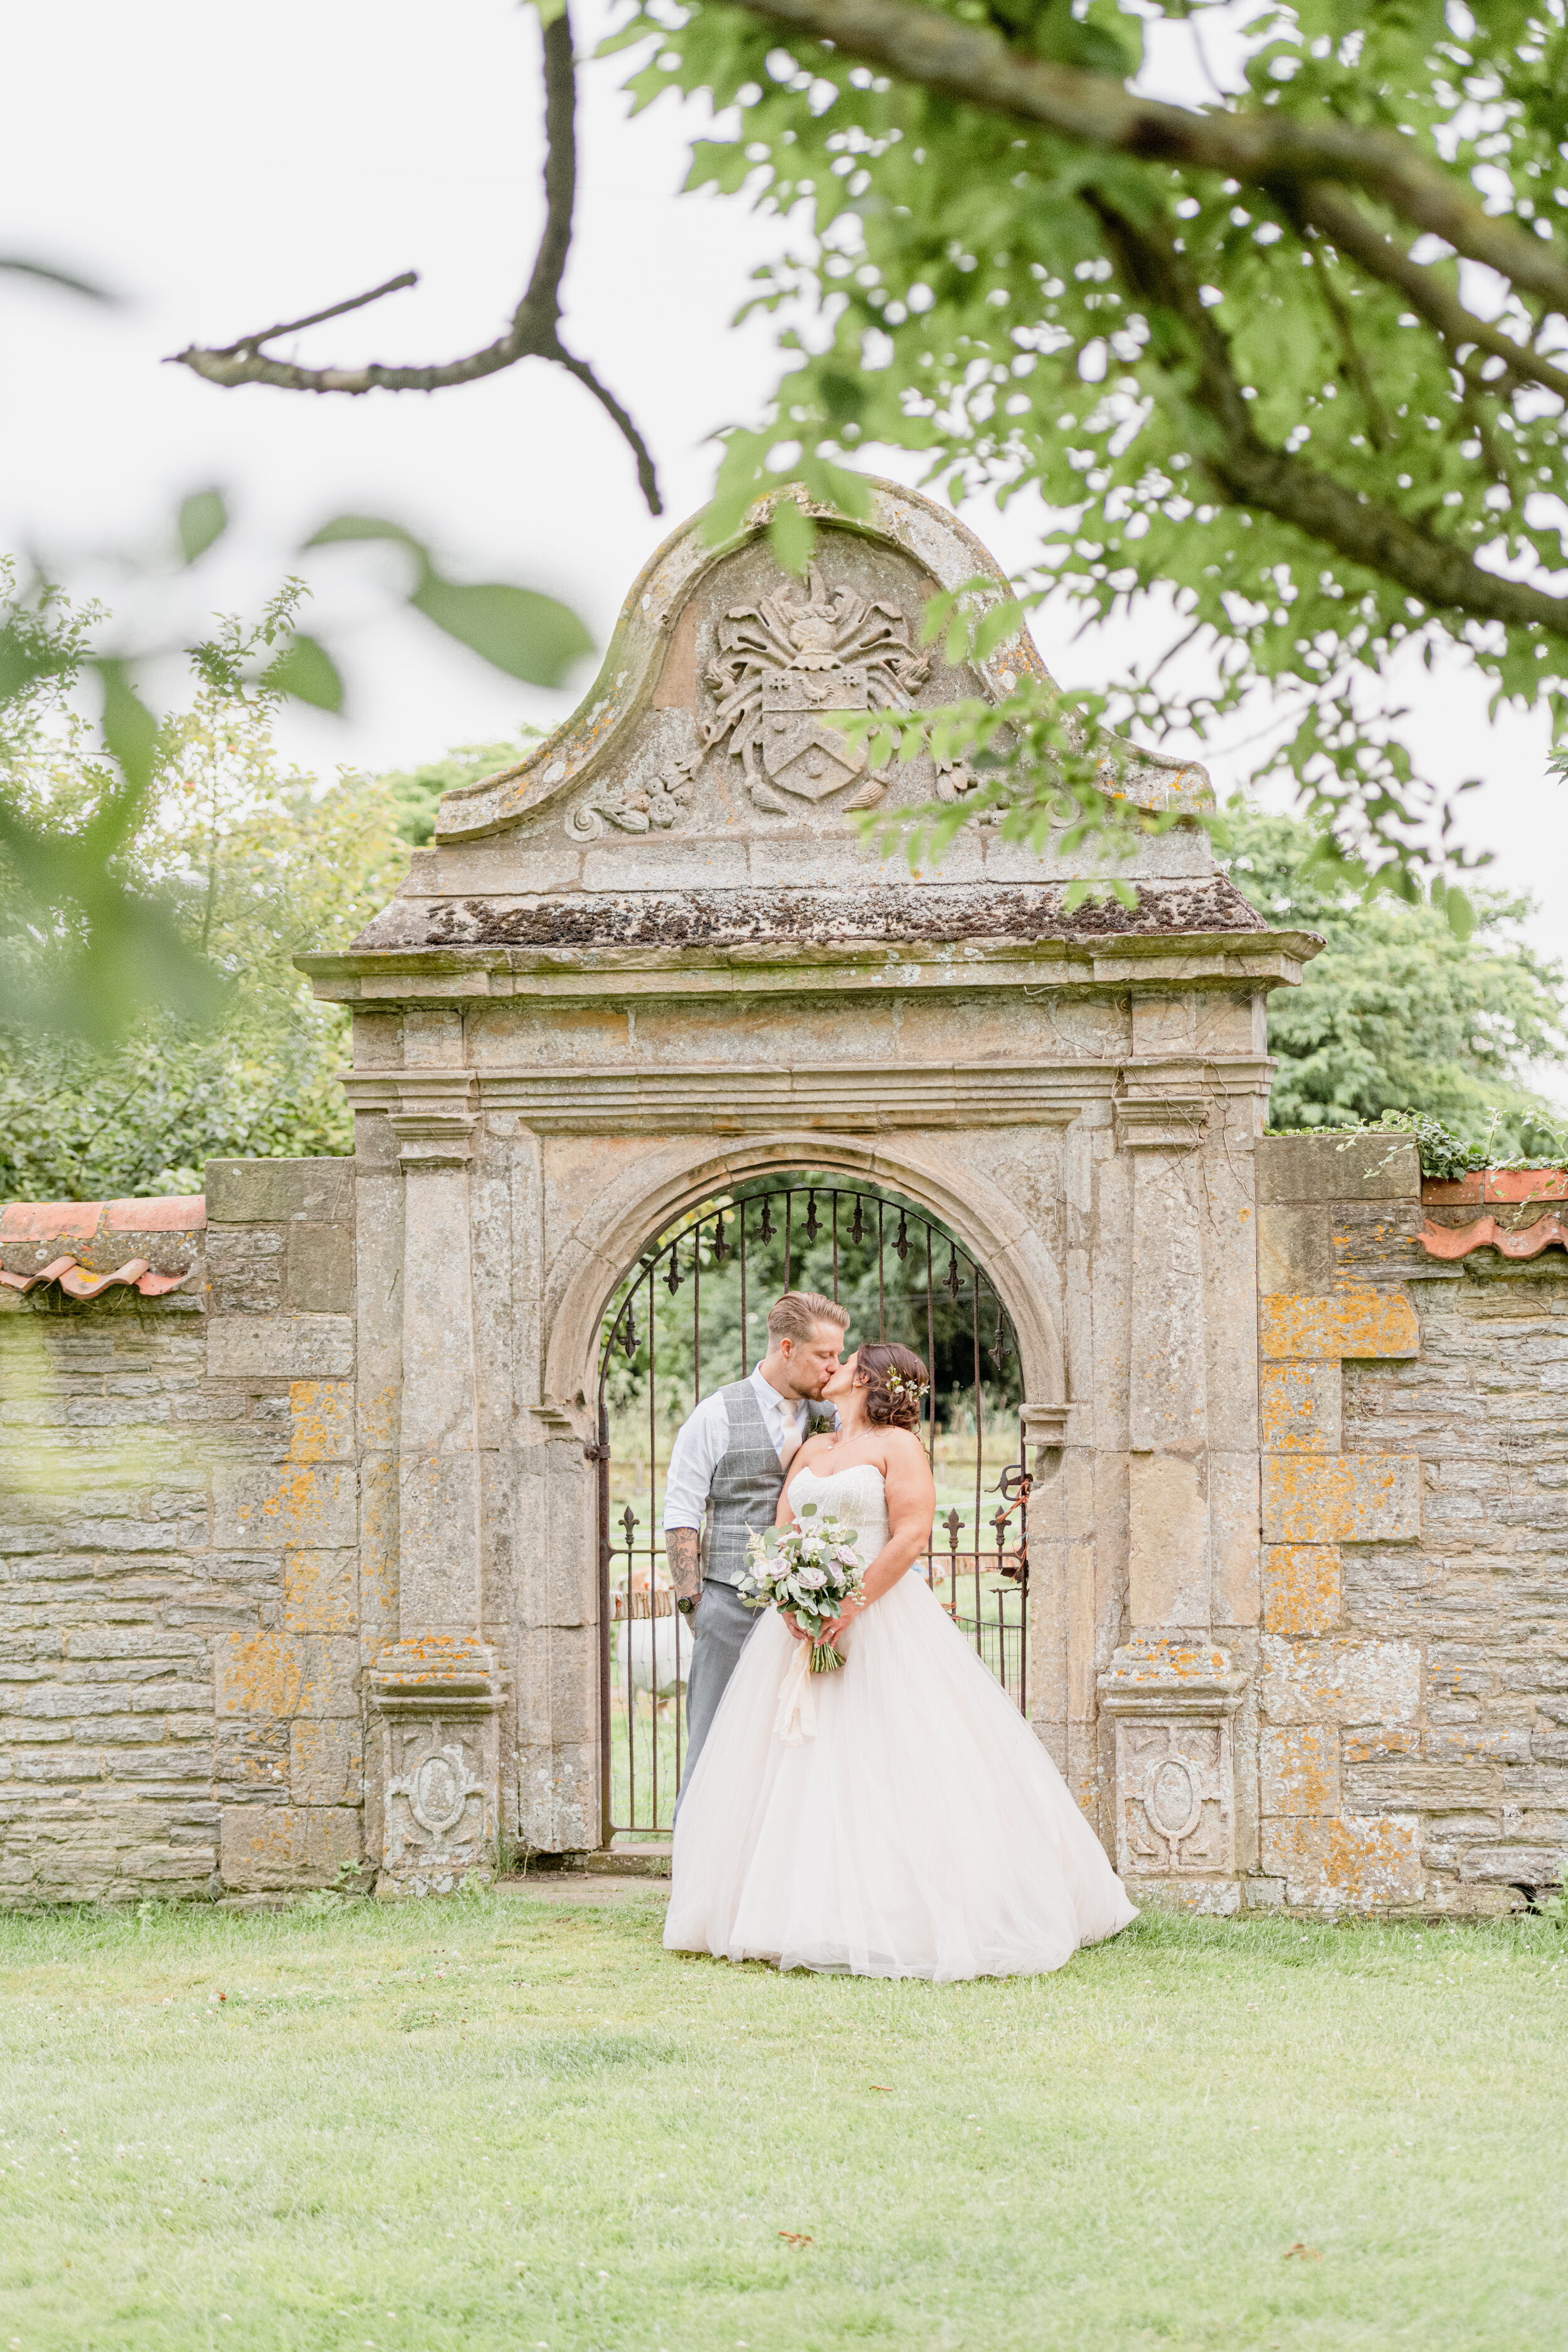 A+S_Stubton Hall Wedding_Fine Art Wedding_Rebekah Robert Photography-5.jpg